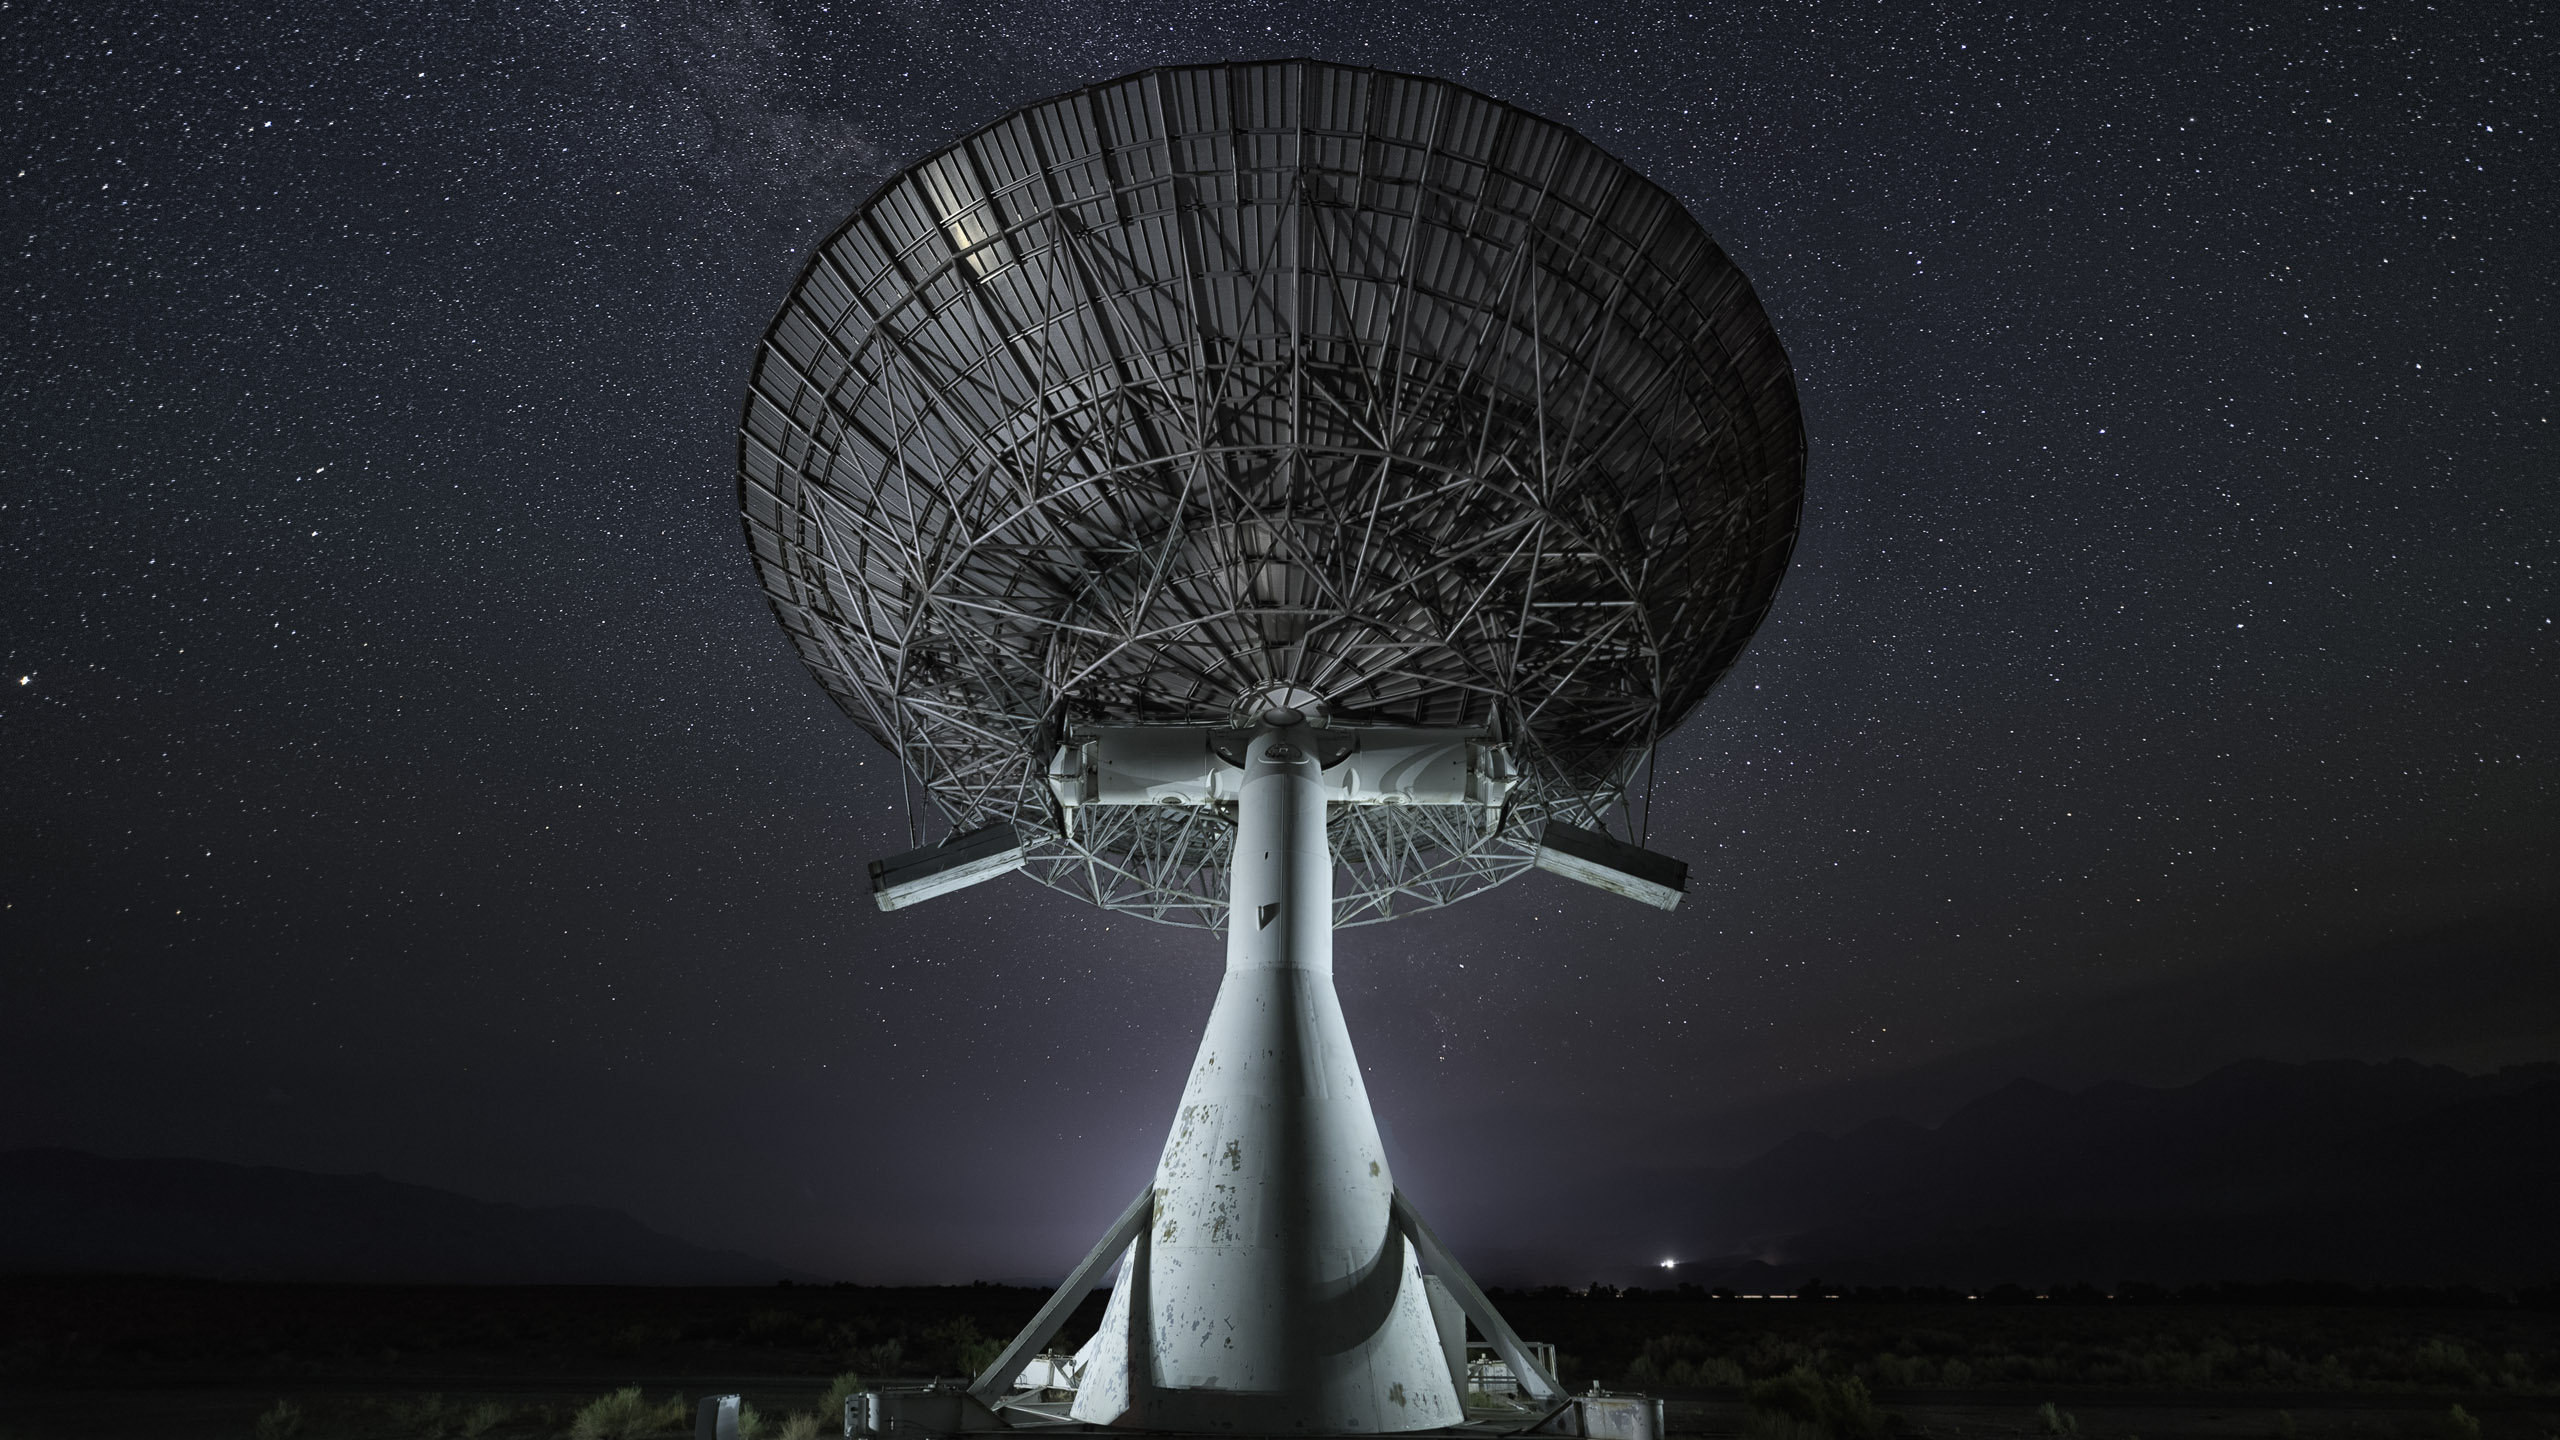 8509_kenlee_owensvalley-milkyway_210712_2303_20totalstacked-15sf24iso4000-trytoturnintomask_OVRO-radio-telescope-centered-south-HEADER